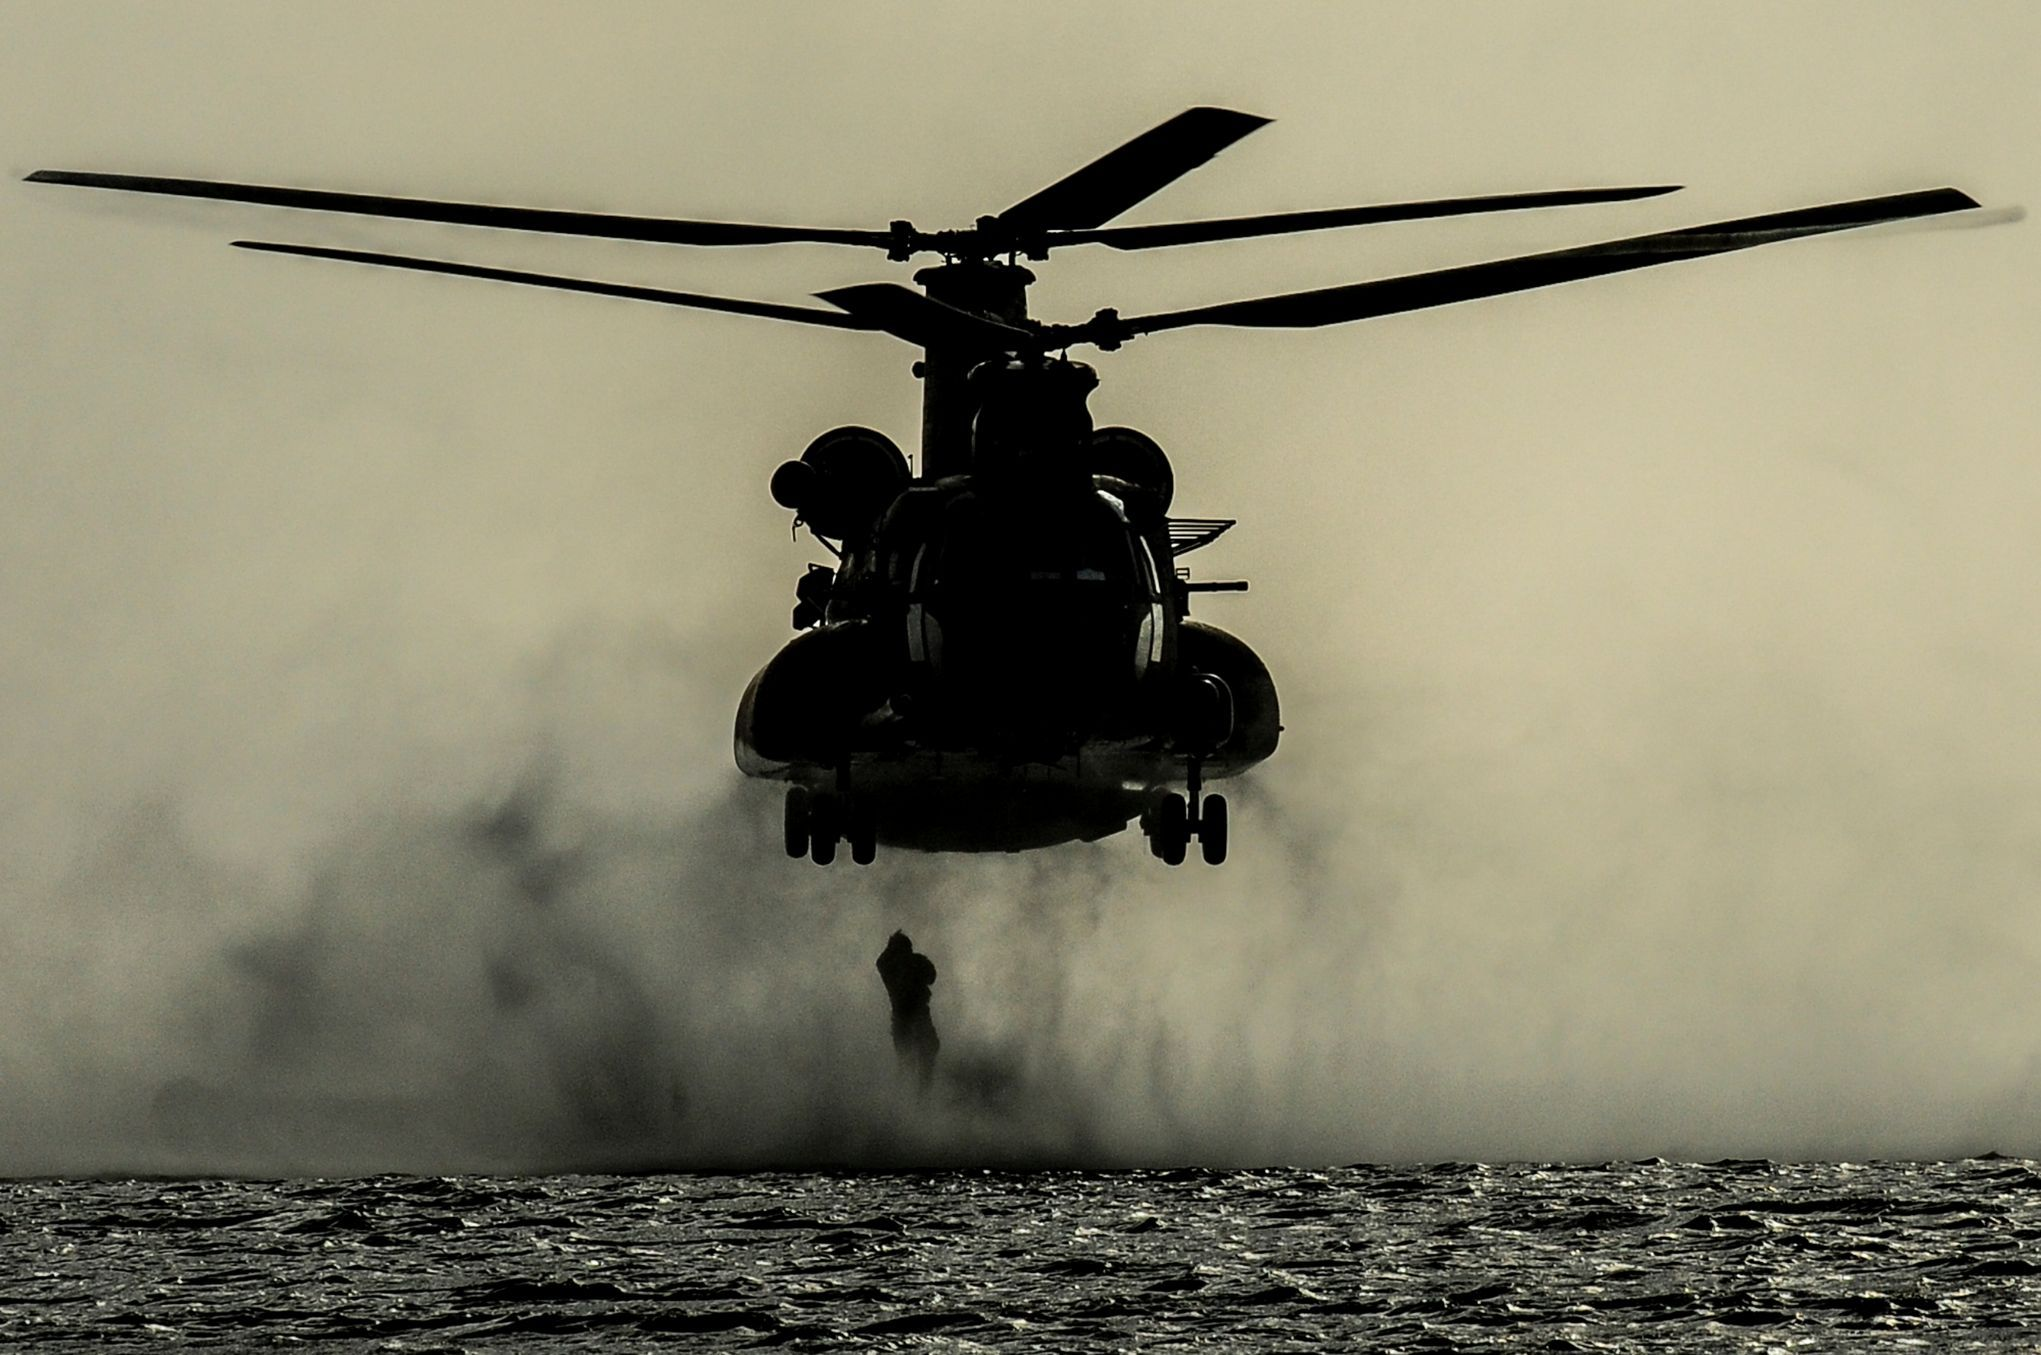 The Special Air Warfare Expo has opportunities to Exhibit or Sponsor